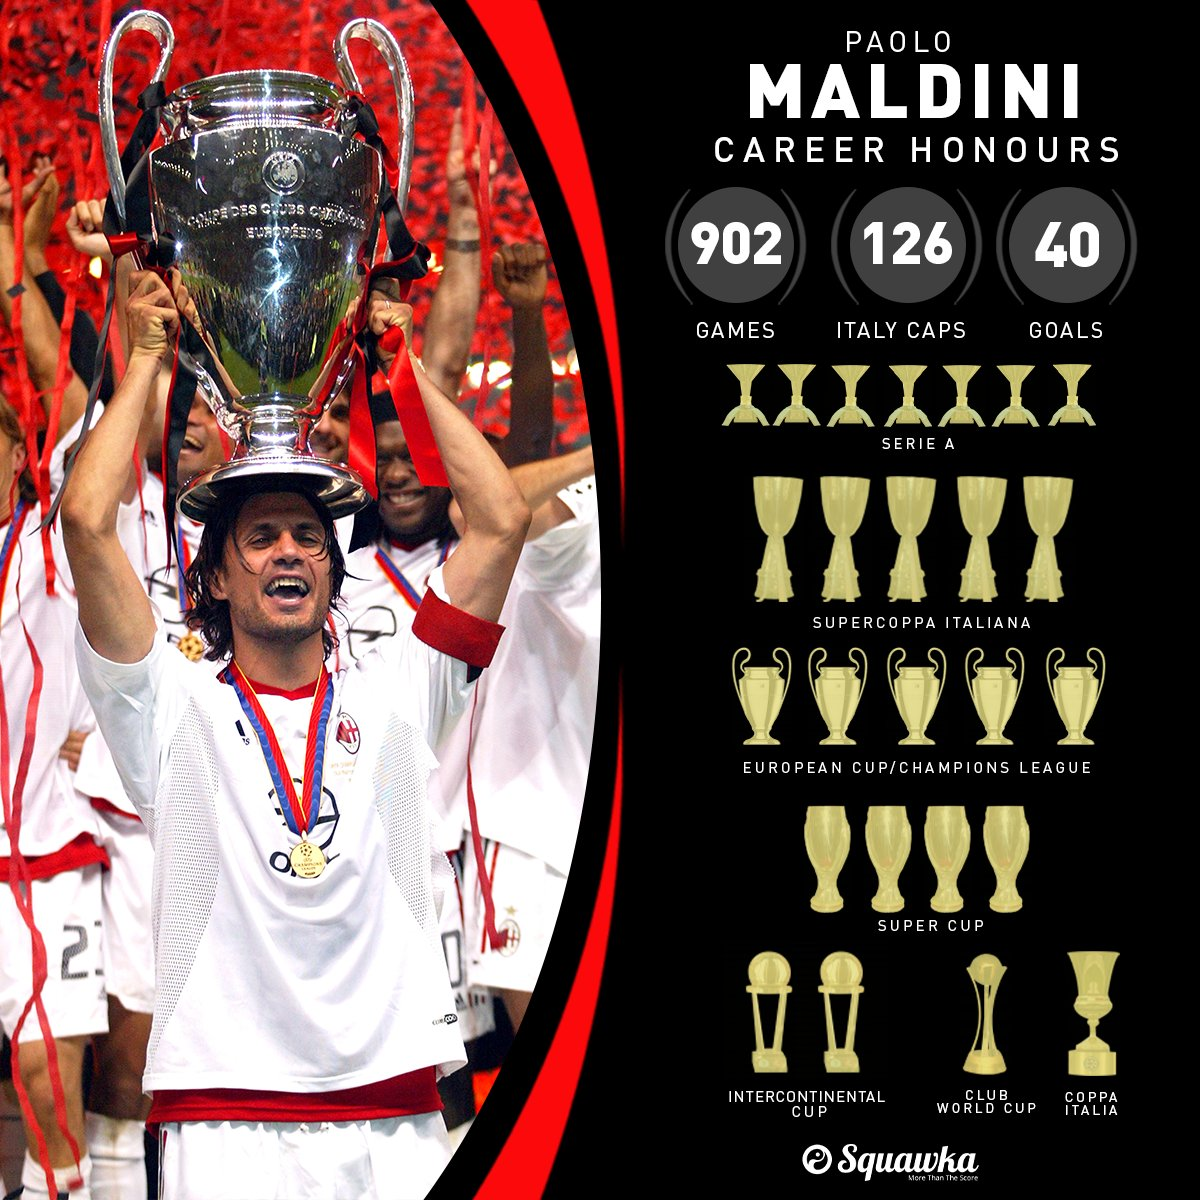 ON THIS DAY: In 1985, a 16-year old Paolo Maldini made his debut for AC Milan against Udinese.  • Most appearances for a single team (902) • Joint-most UCL finals played in (8) • 7x Serie A winner • 5x European Cup/Champions League winner  One of the greatest ever defenders. <br>http://pic.twitter.com/PmhUjpMORw